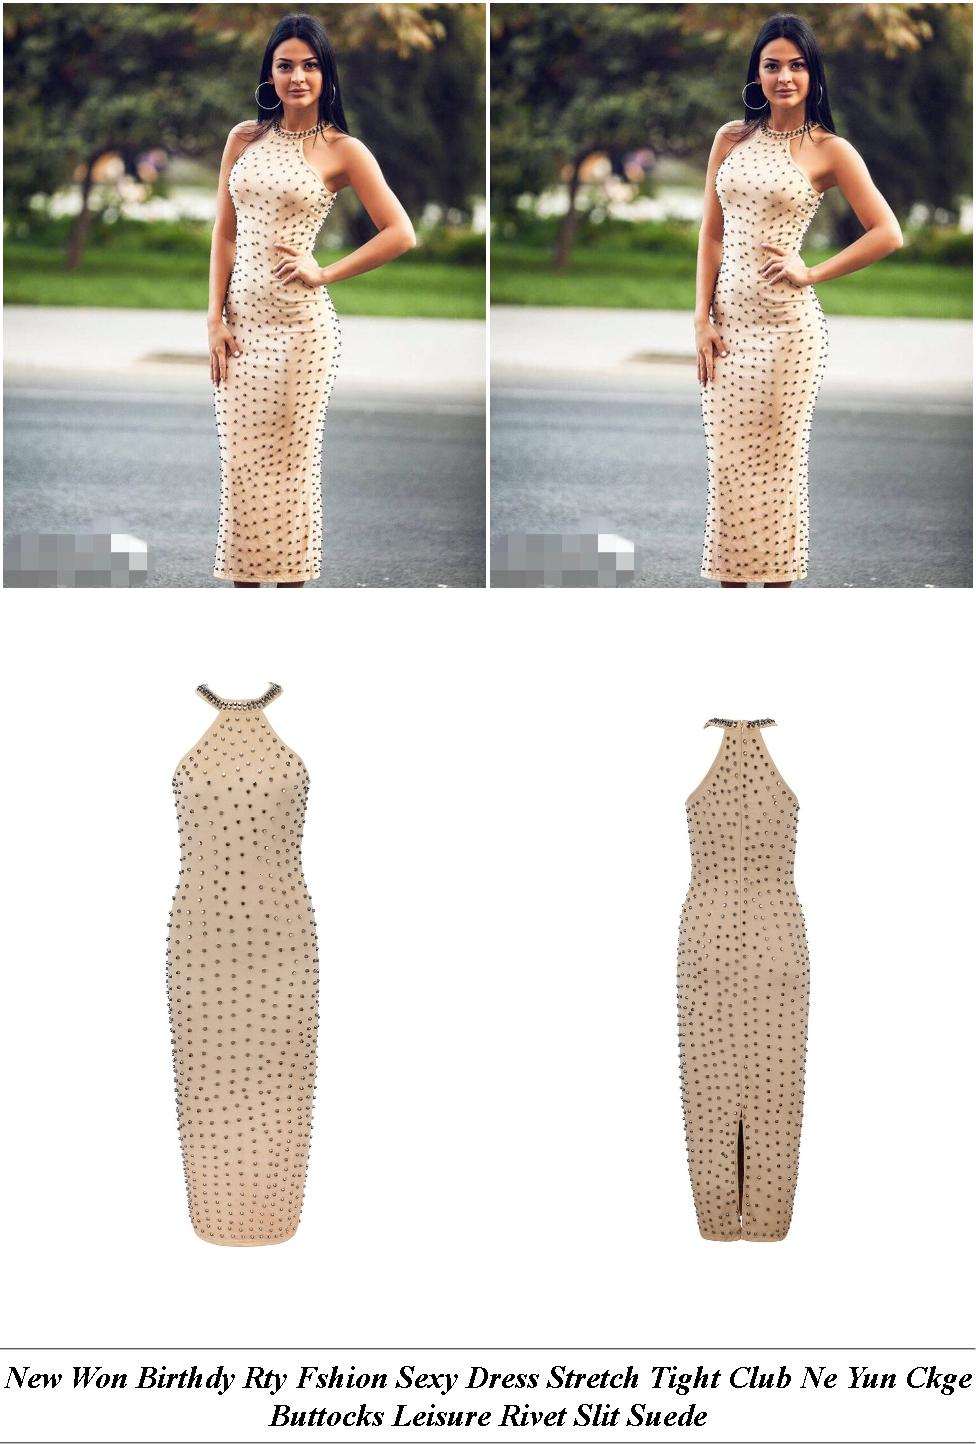 Junior Prom Dresses - Clearance Sale Uk - Yellow Dress - Cheap Cute Clothes